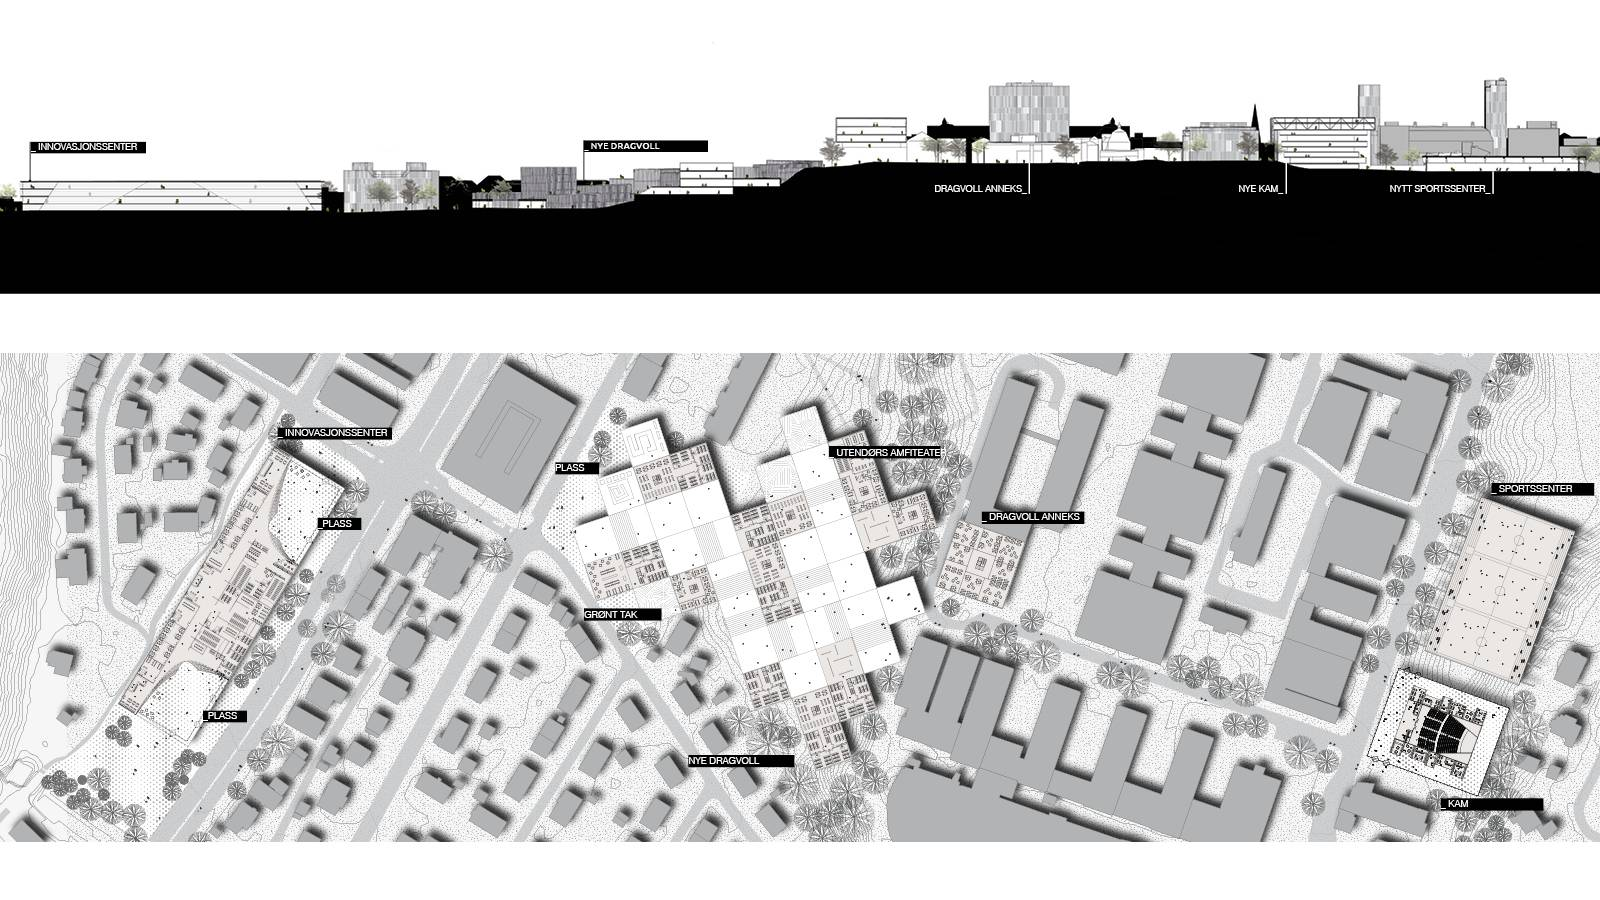 NEW CAMPUS PLAN - NTNU – Open Campus - SPOL Architects